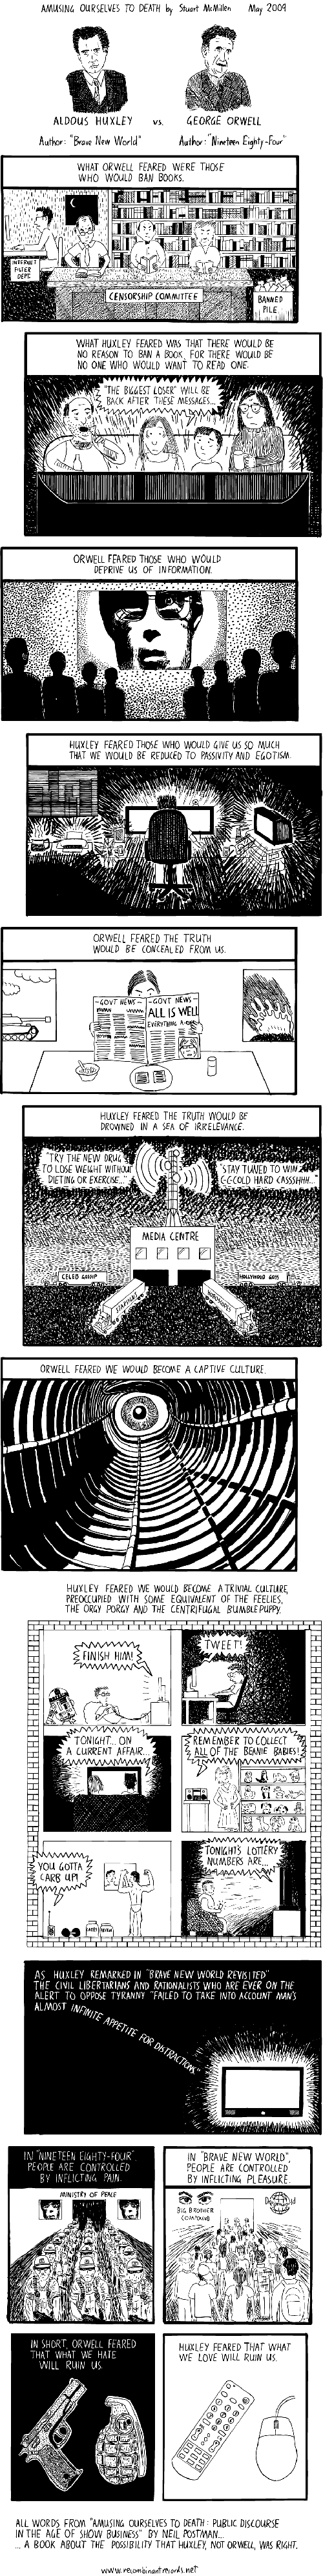 Orwell versus Huxley cartoon